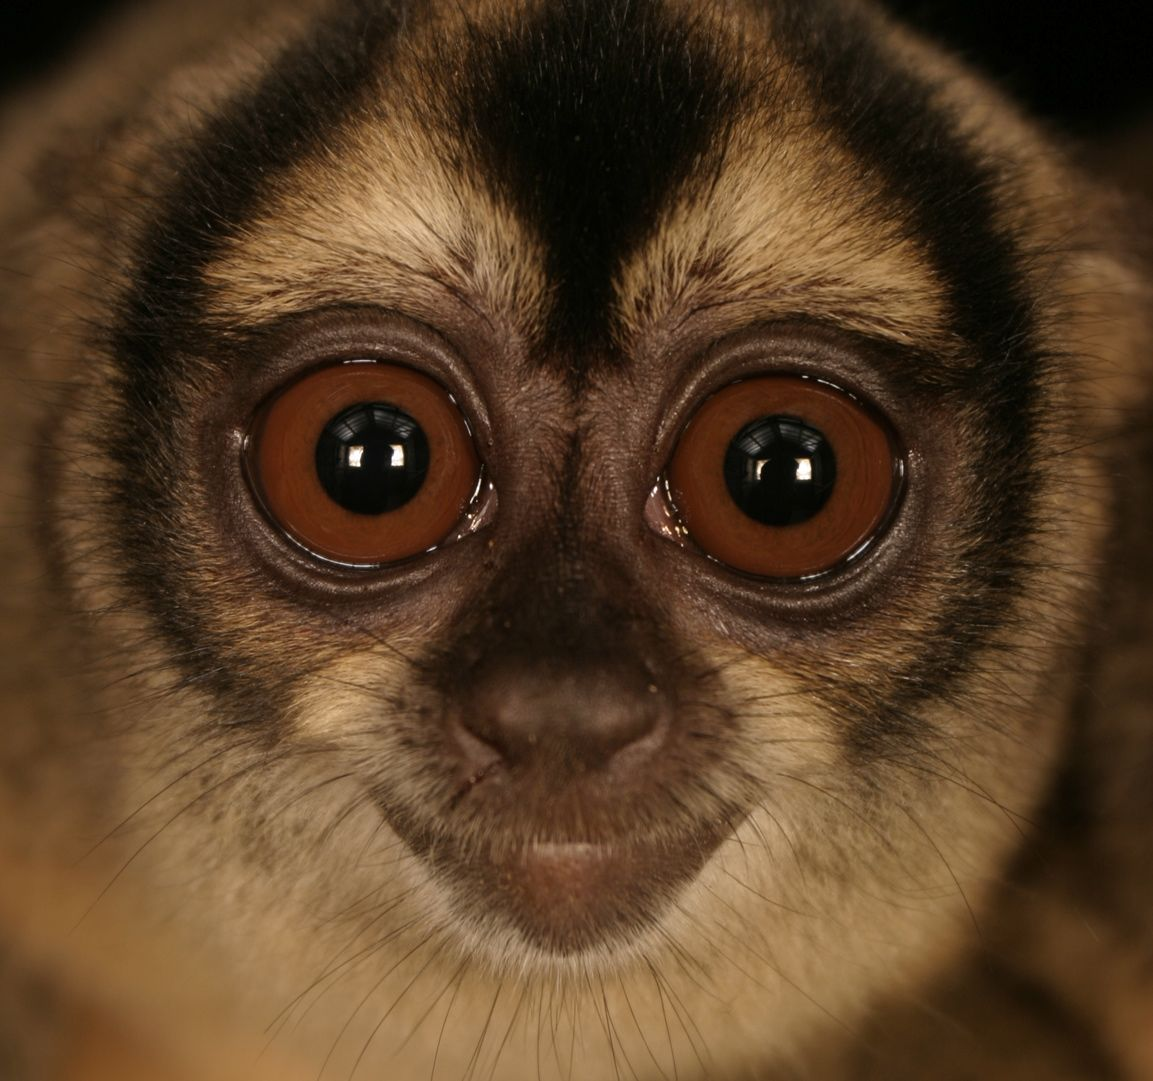 Eying trouble ahead... night monkey in Peru.